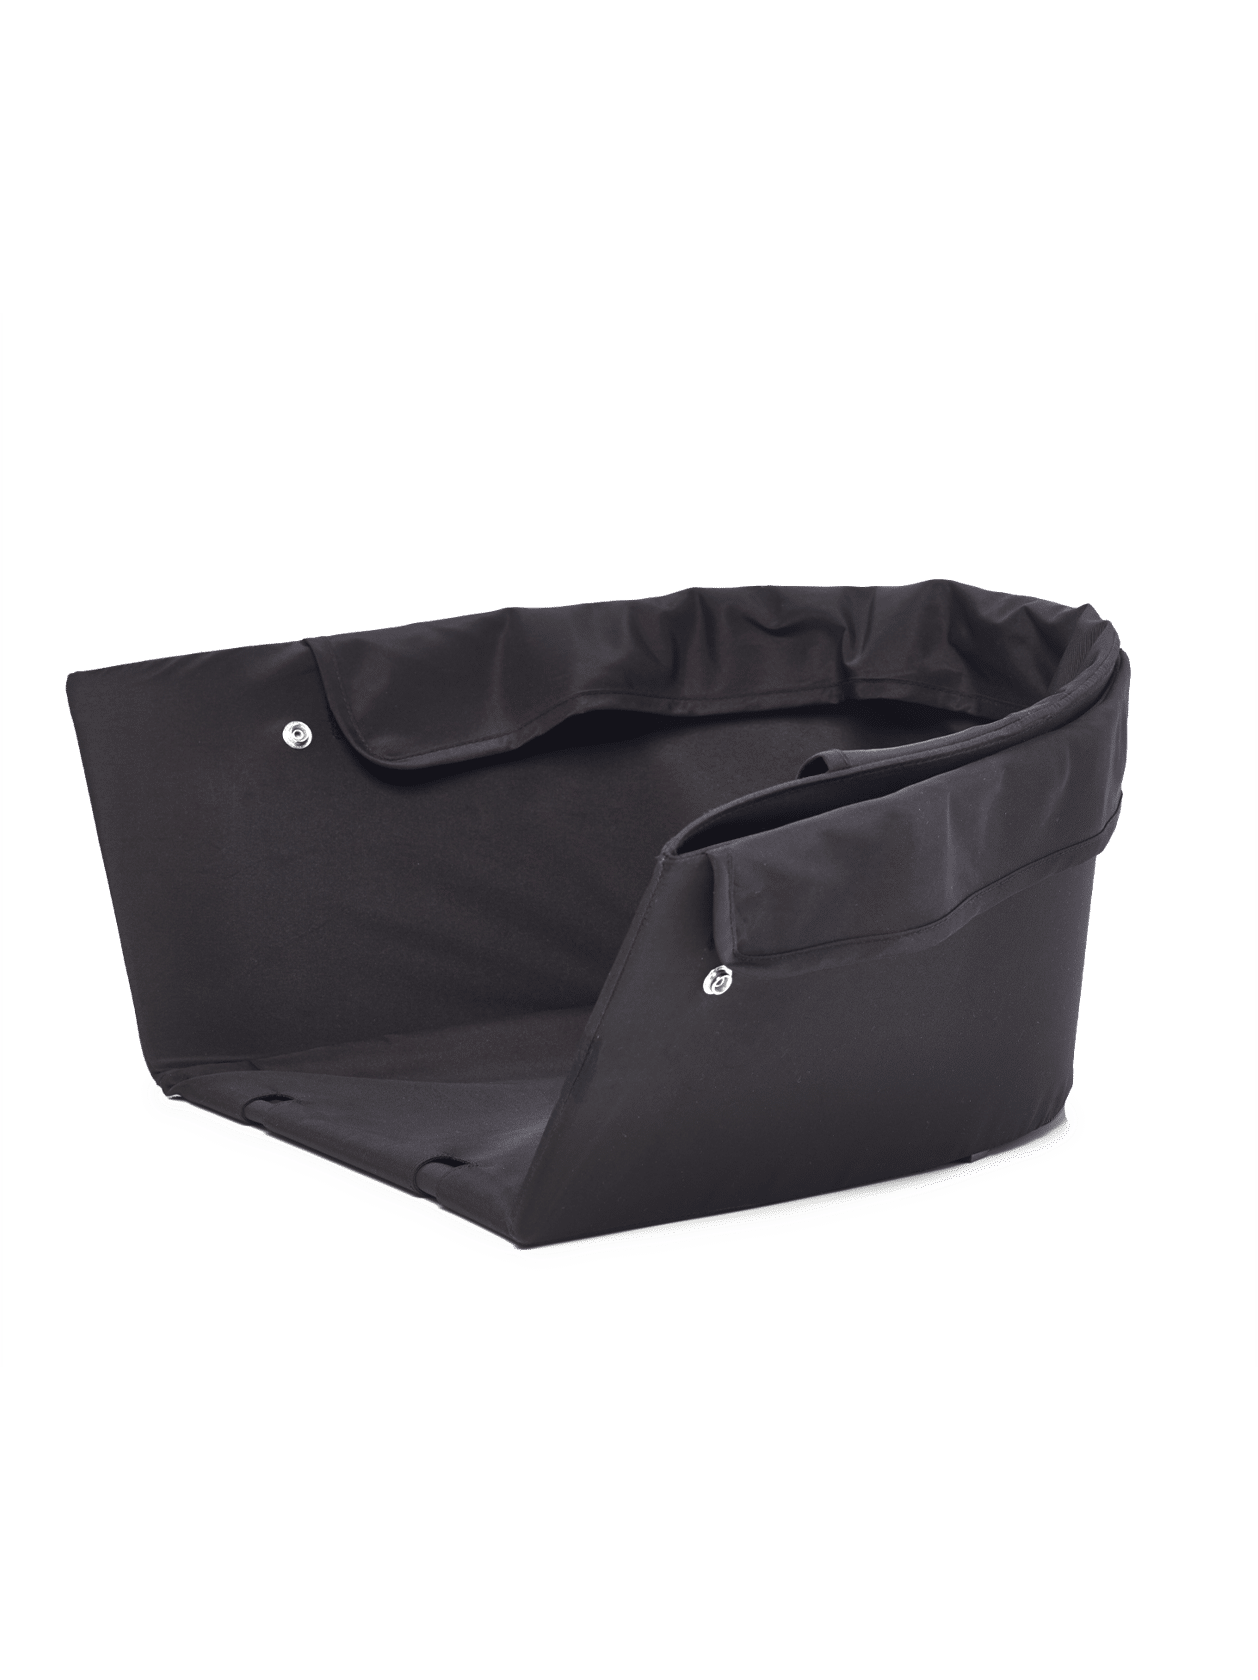 Strawberry2 Carrycot Fabric